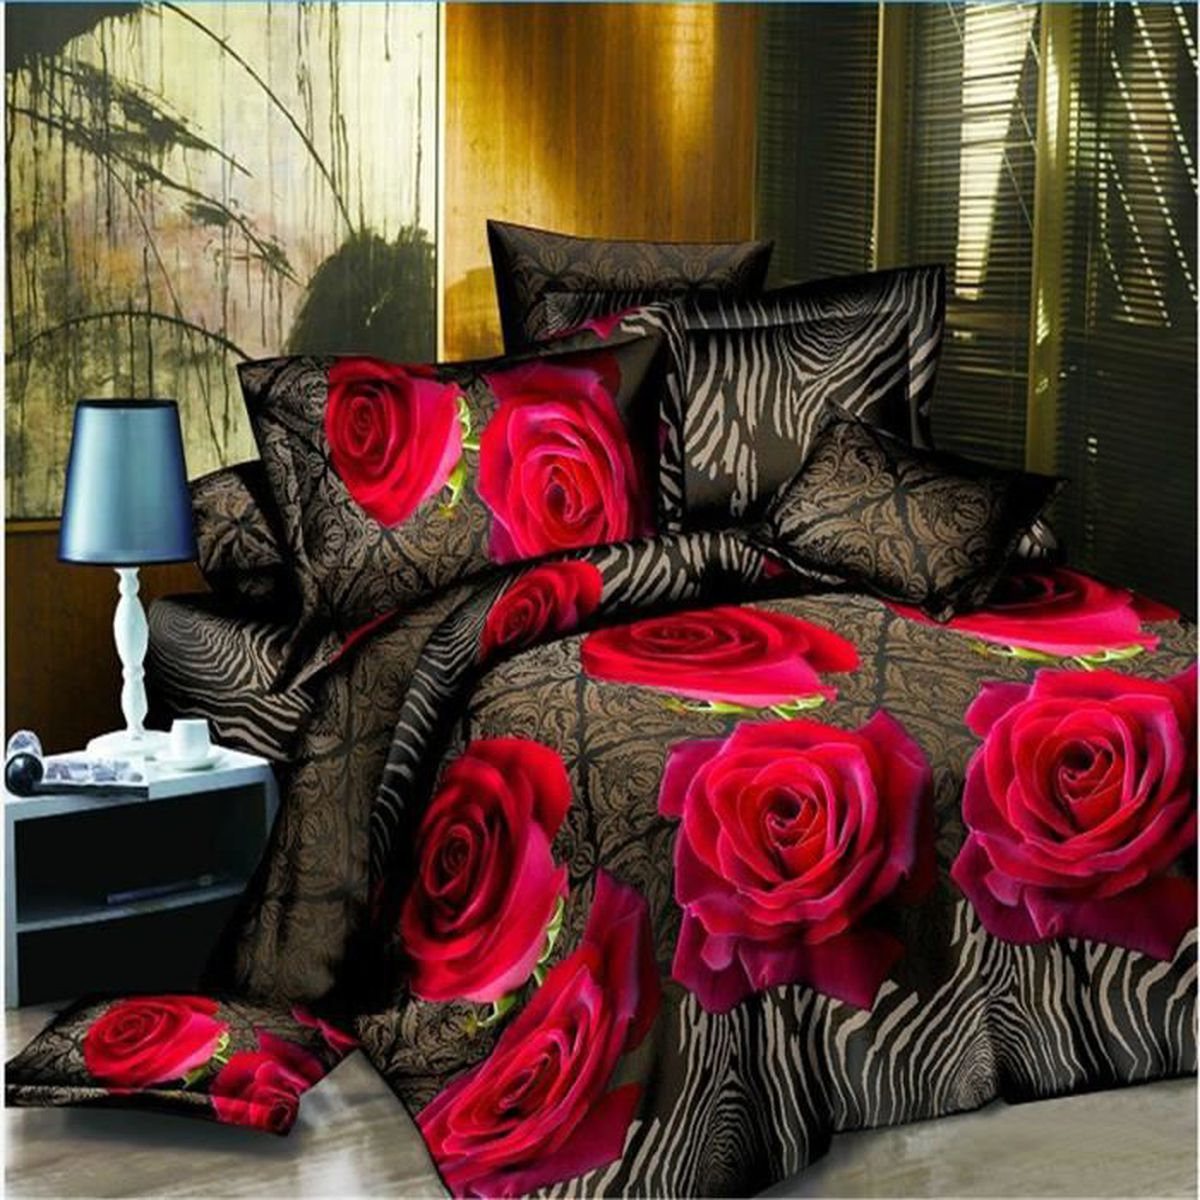 parure de couette parure de lit sexy red rose motif 1 housse de couette 220x240cm 2 taie d. Black Bedroom Furniture Sets. Home Design Ideas